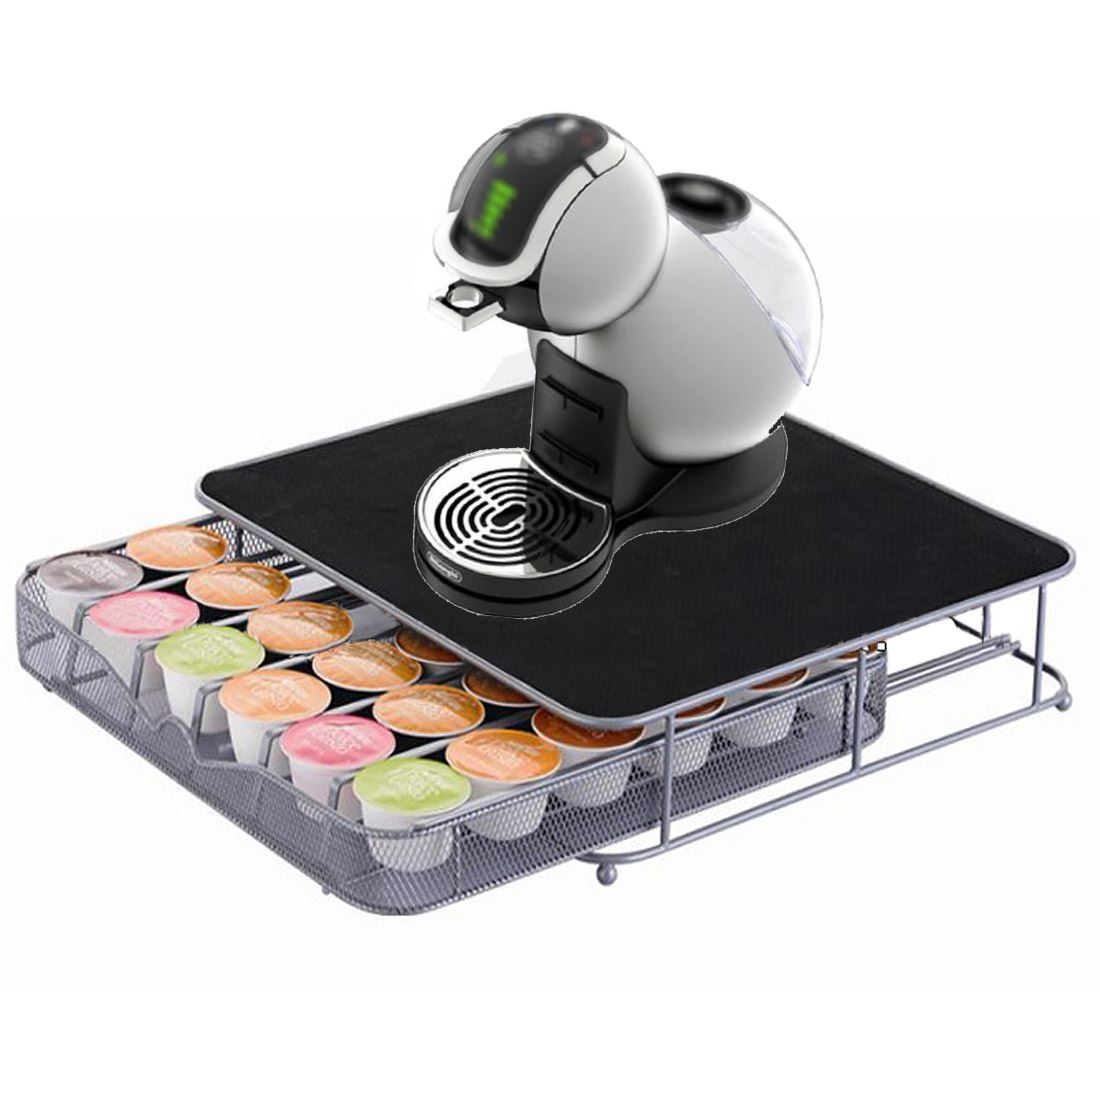 Uk new dolce gusto only 6 row coffee machine stand small pods capsule storage - Rangement capsule dolce gusto ...